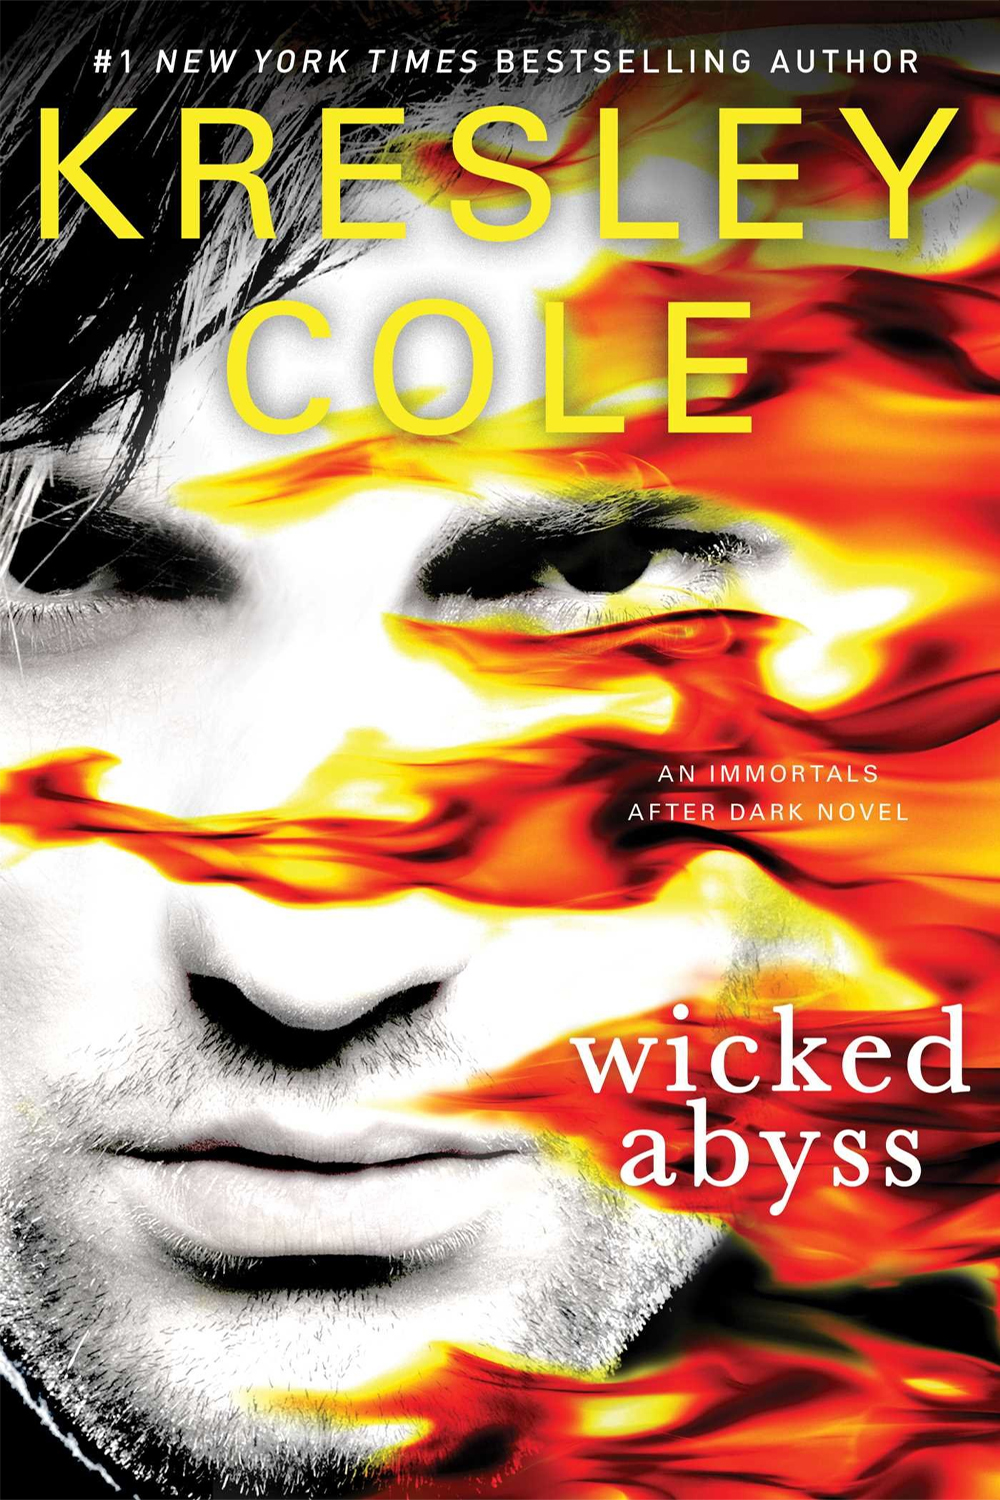 S1 E17 Wicked Abyss by Kresley Cole